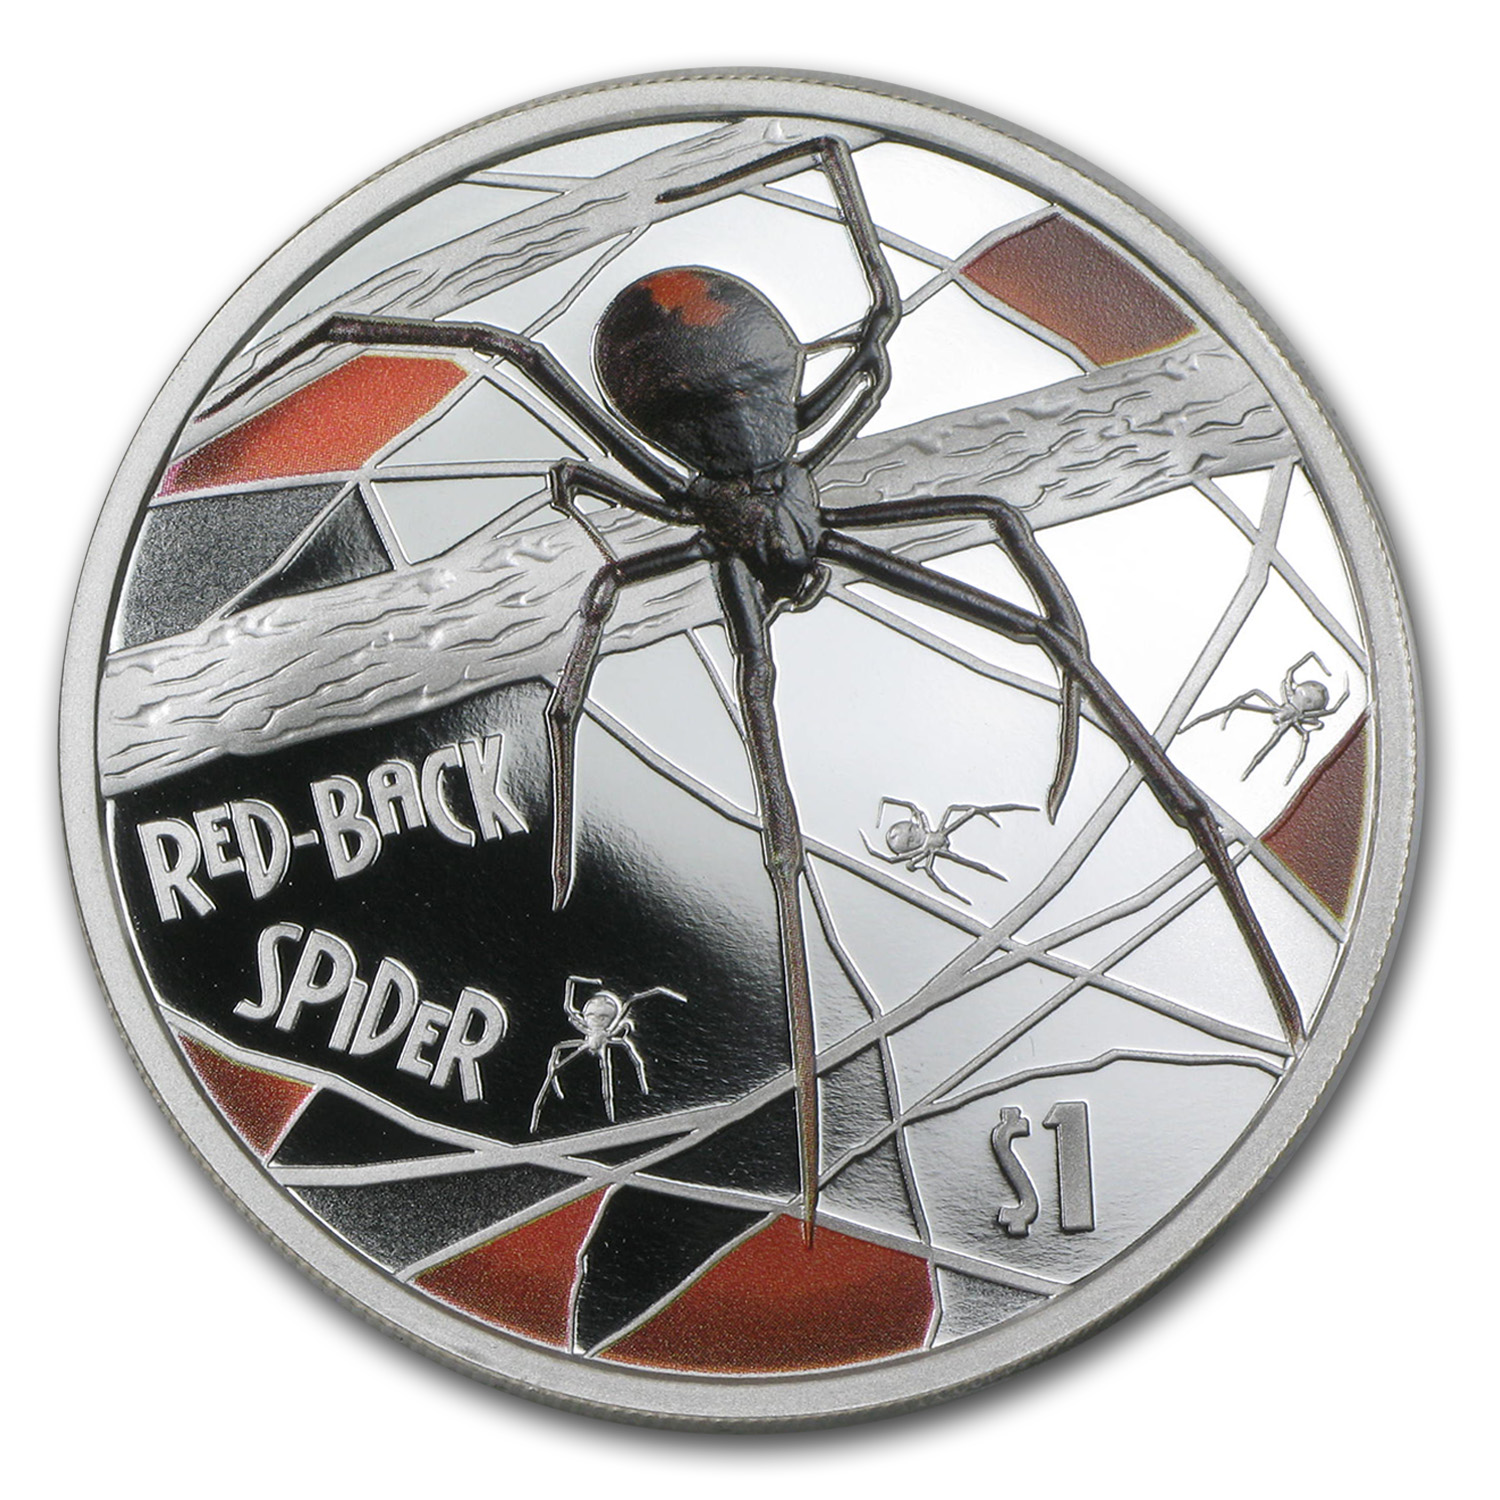 2006 Australia 1 oz Silver Red-Back Spider Proof